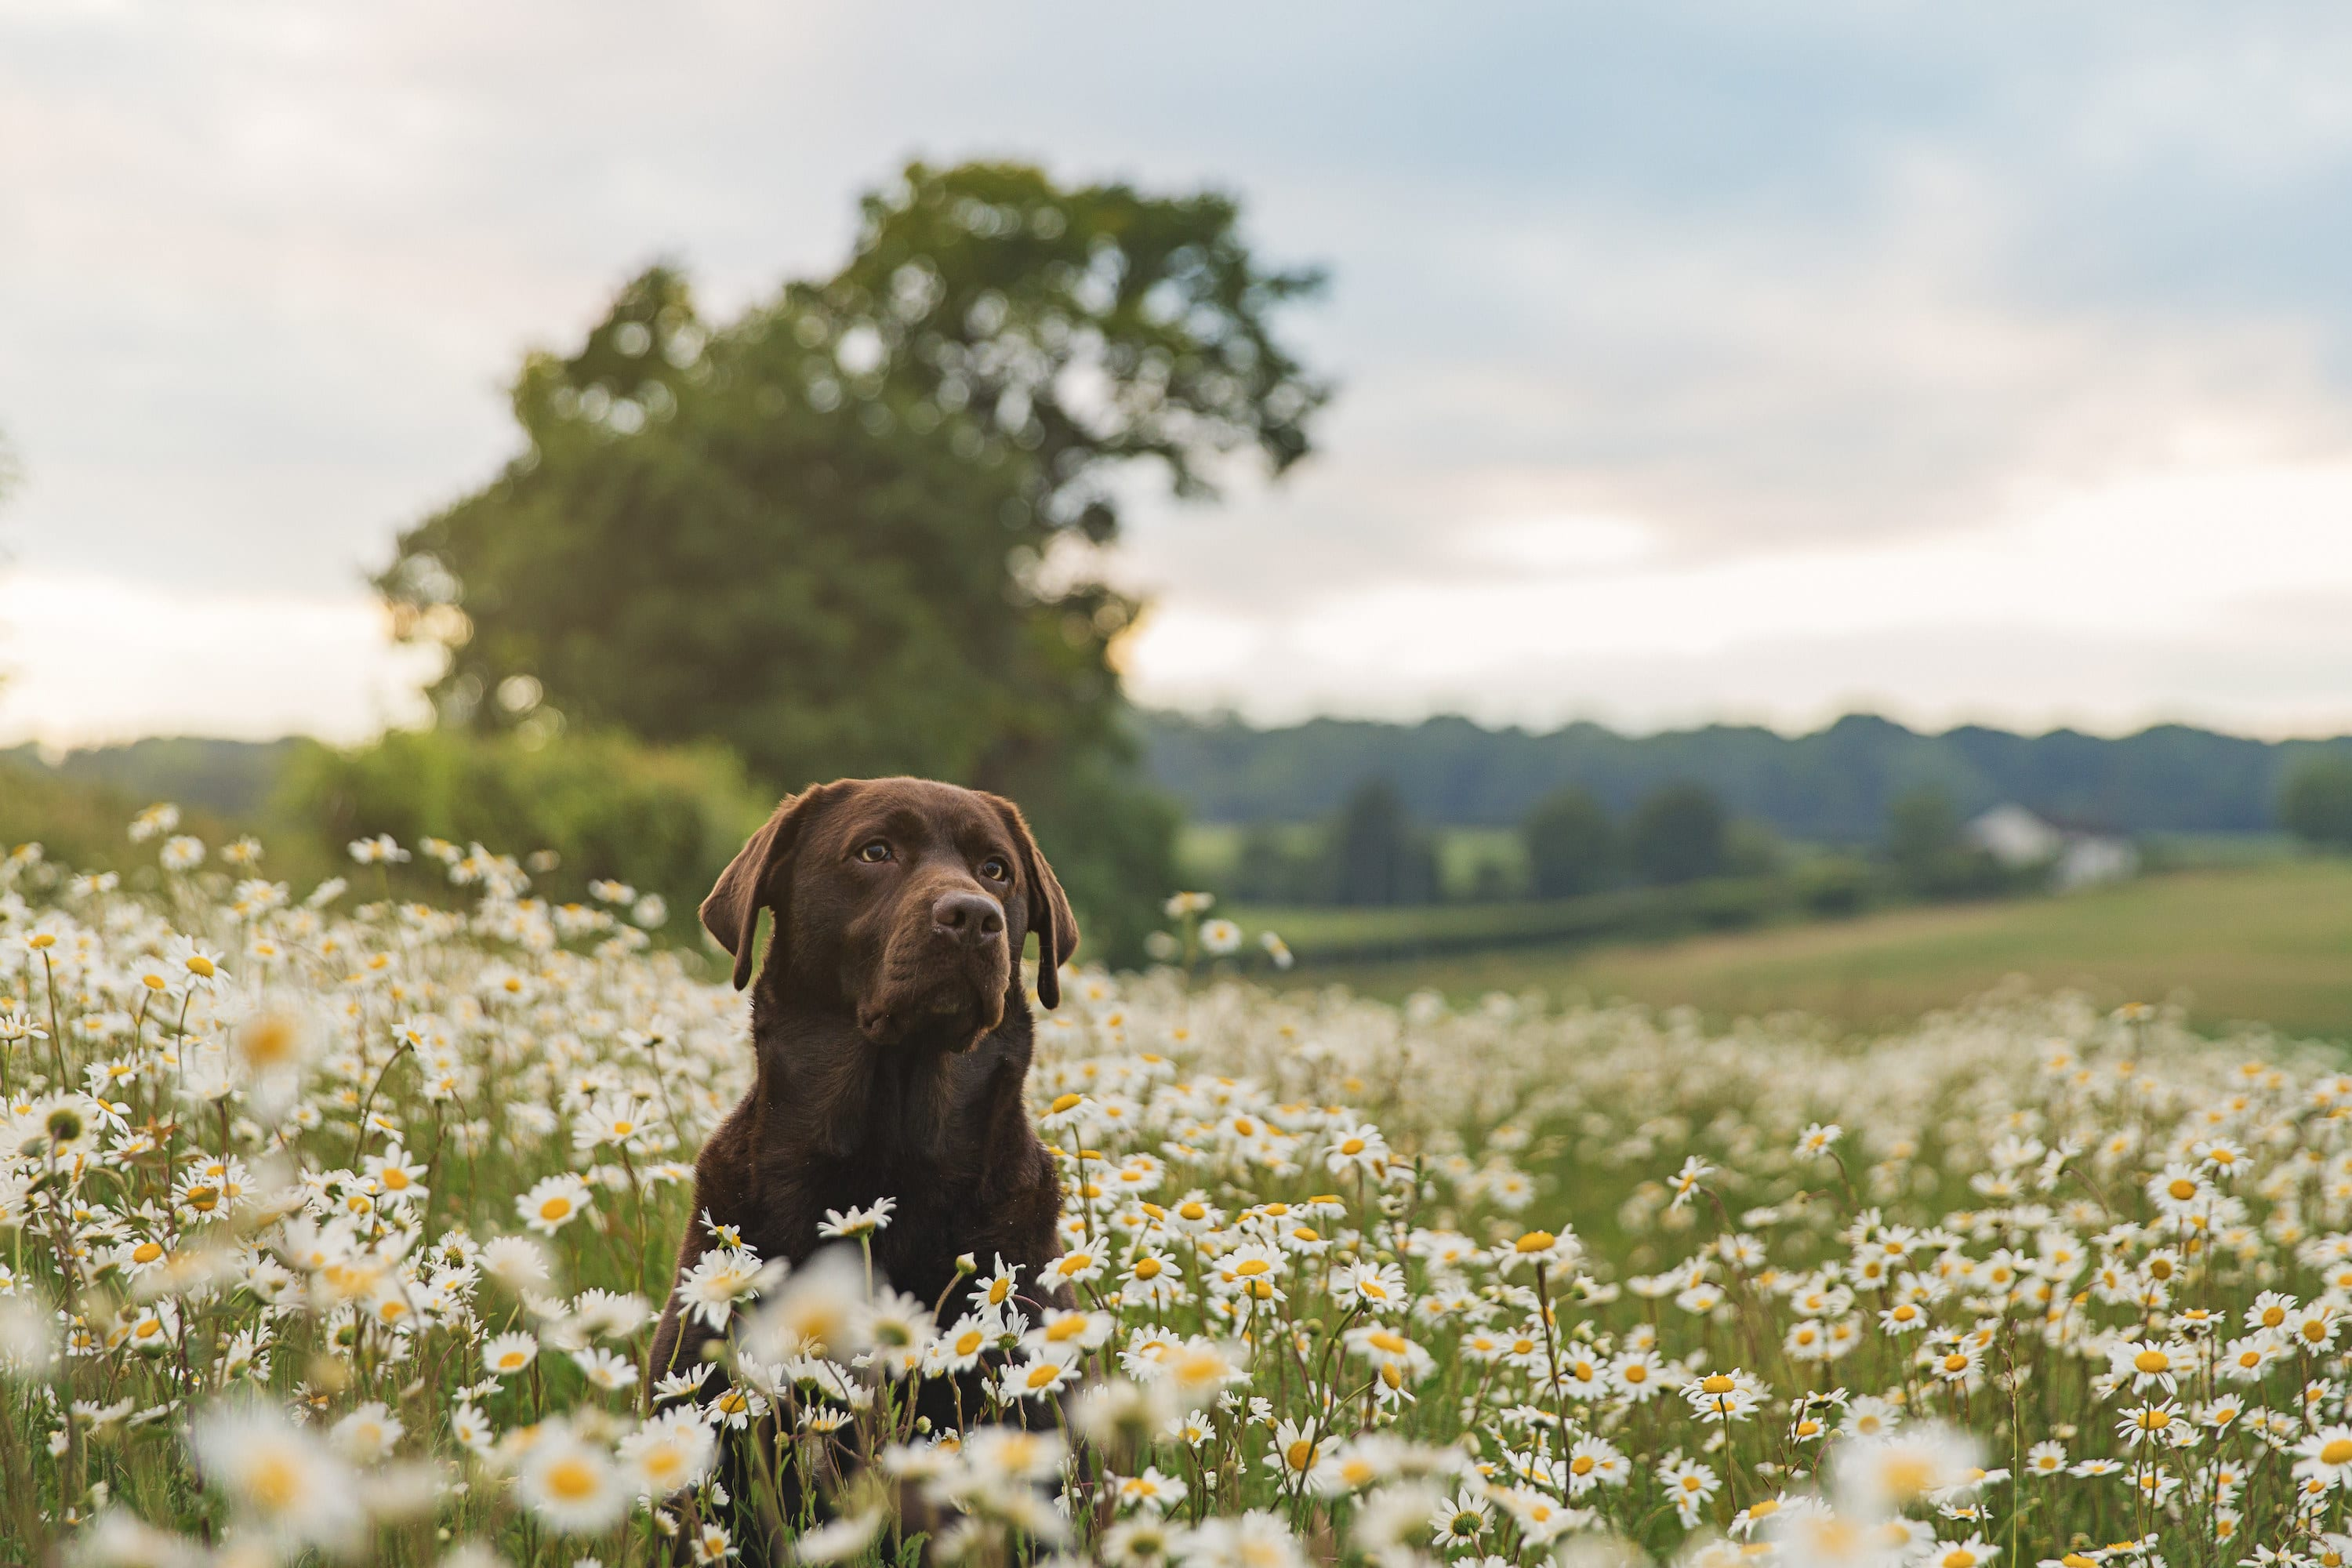 A chocolate lab in a field of flowers, open field and tree behind it